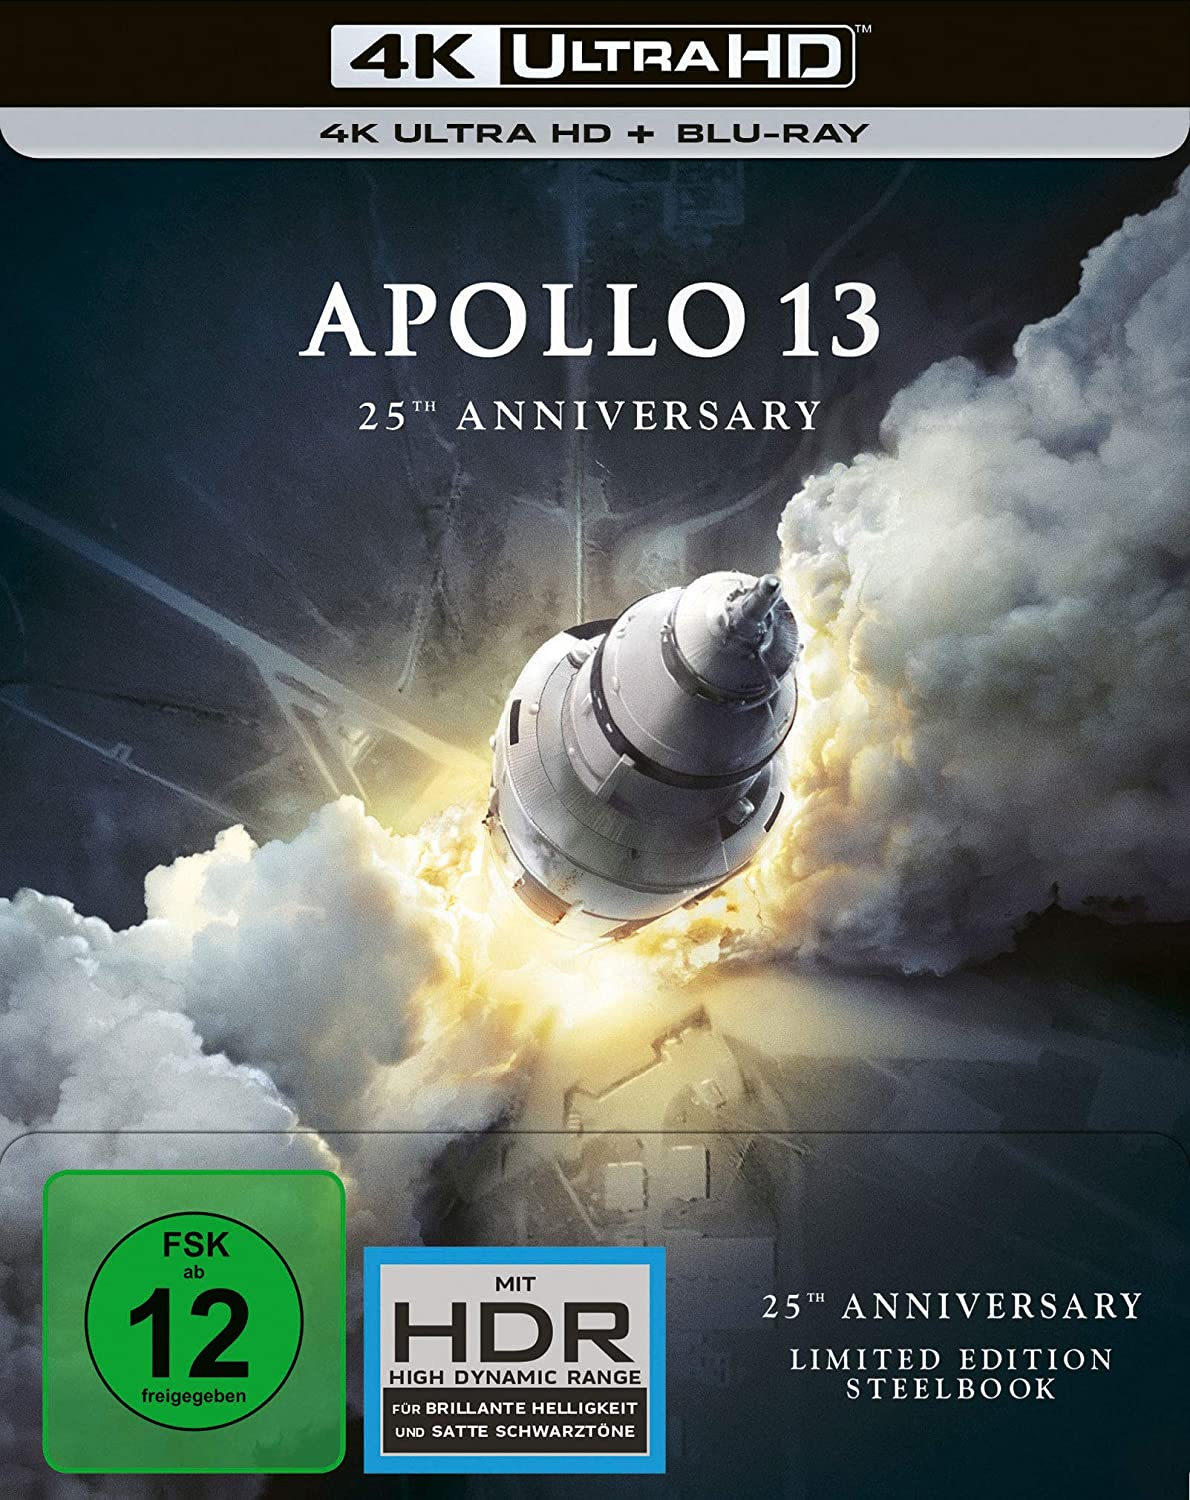 Apollo 13 im 4K UHD Steelbook (Abbild: Saturn V, Seriennummer AS-508)